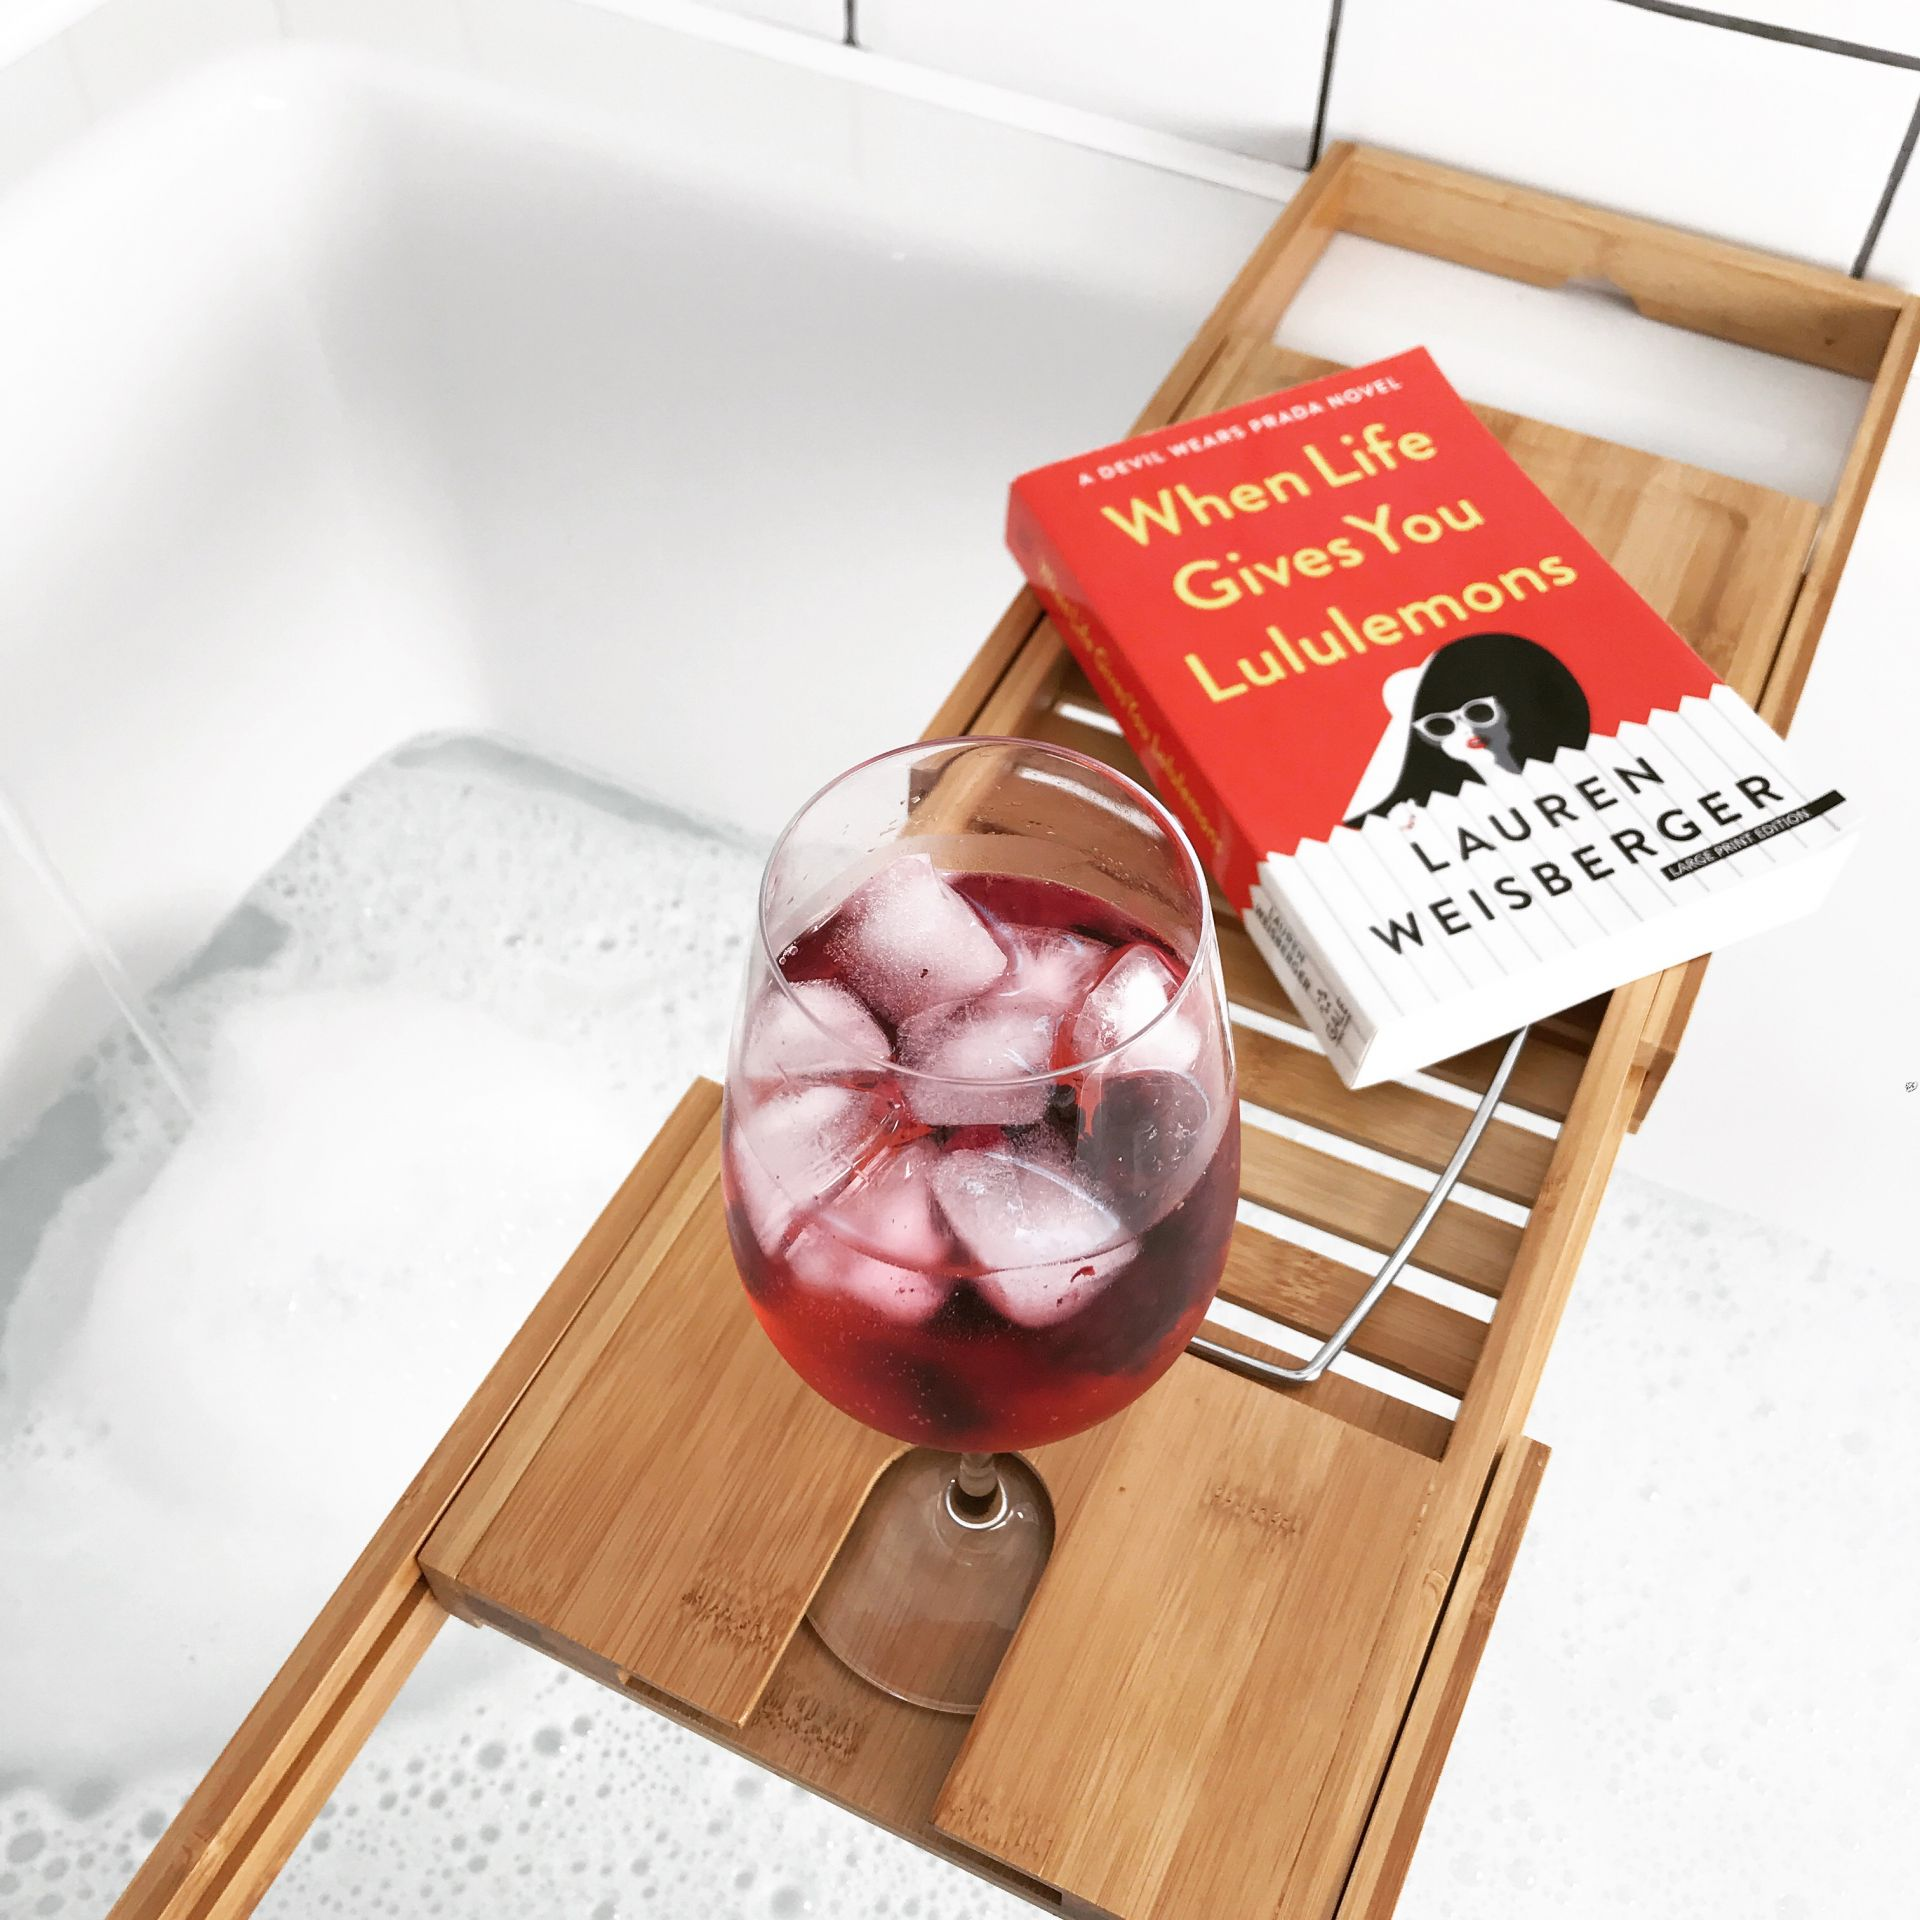 My guide to the perfect pamper evening